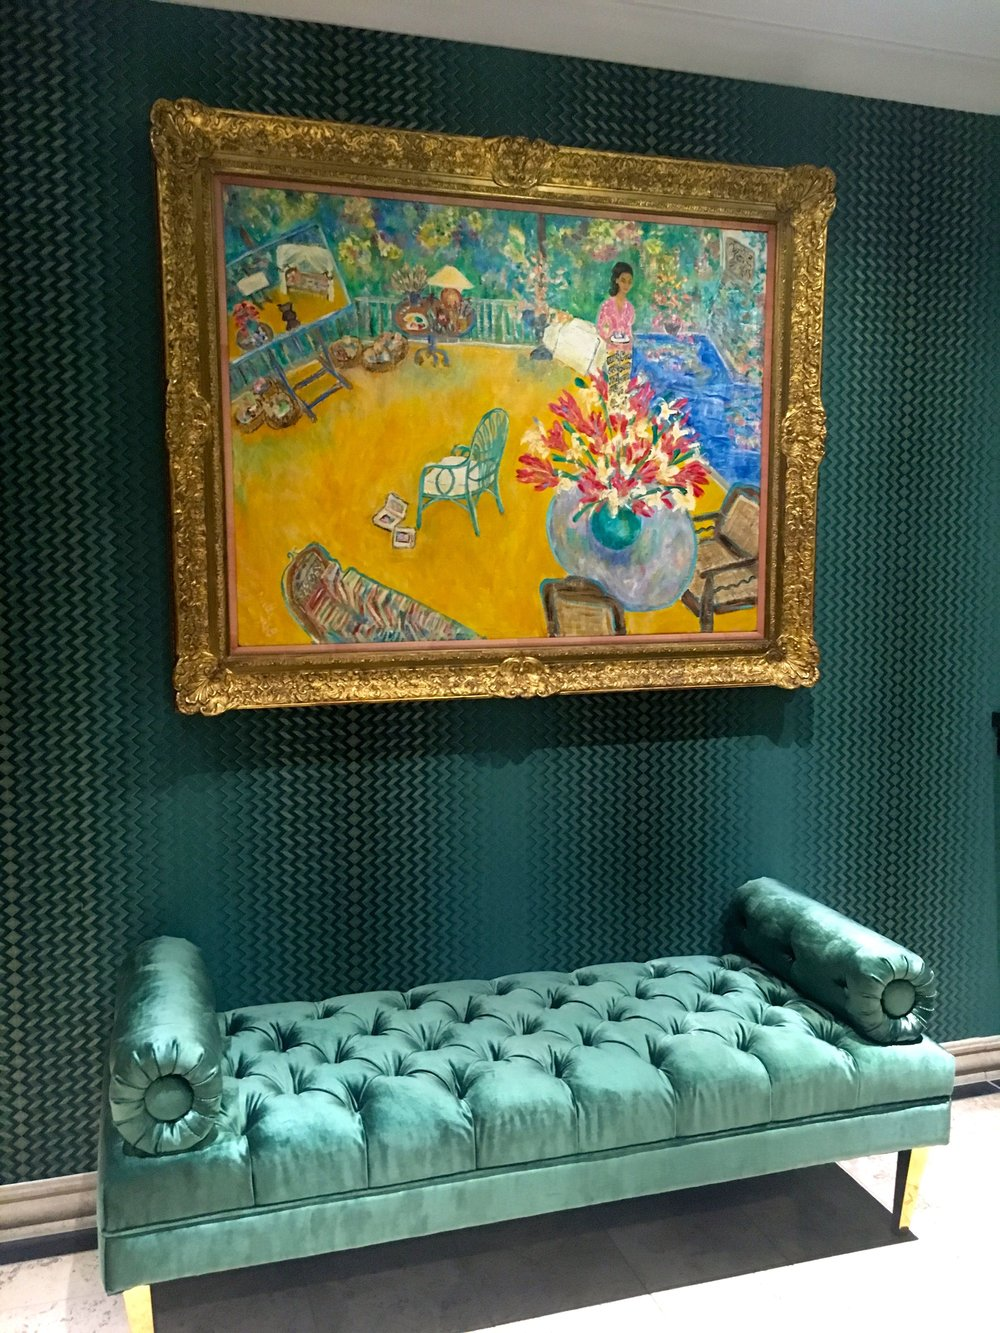 The painting is still there and joined by an emerald padded seat